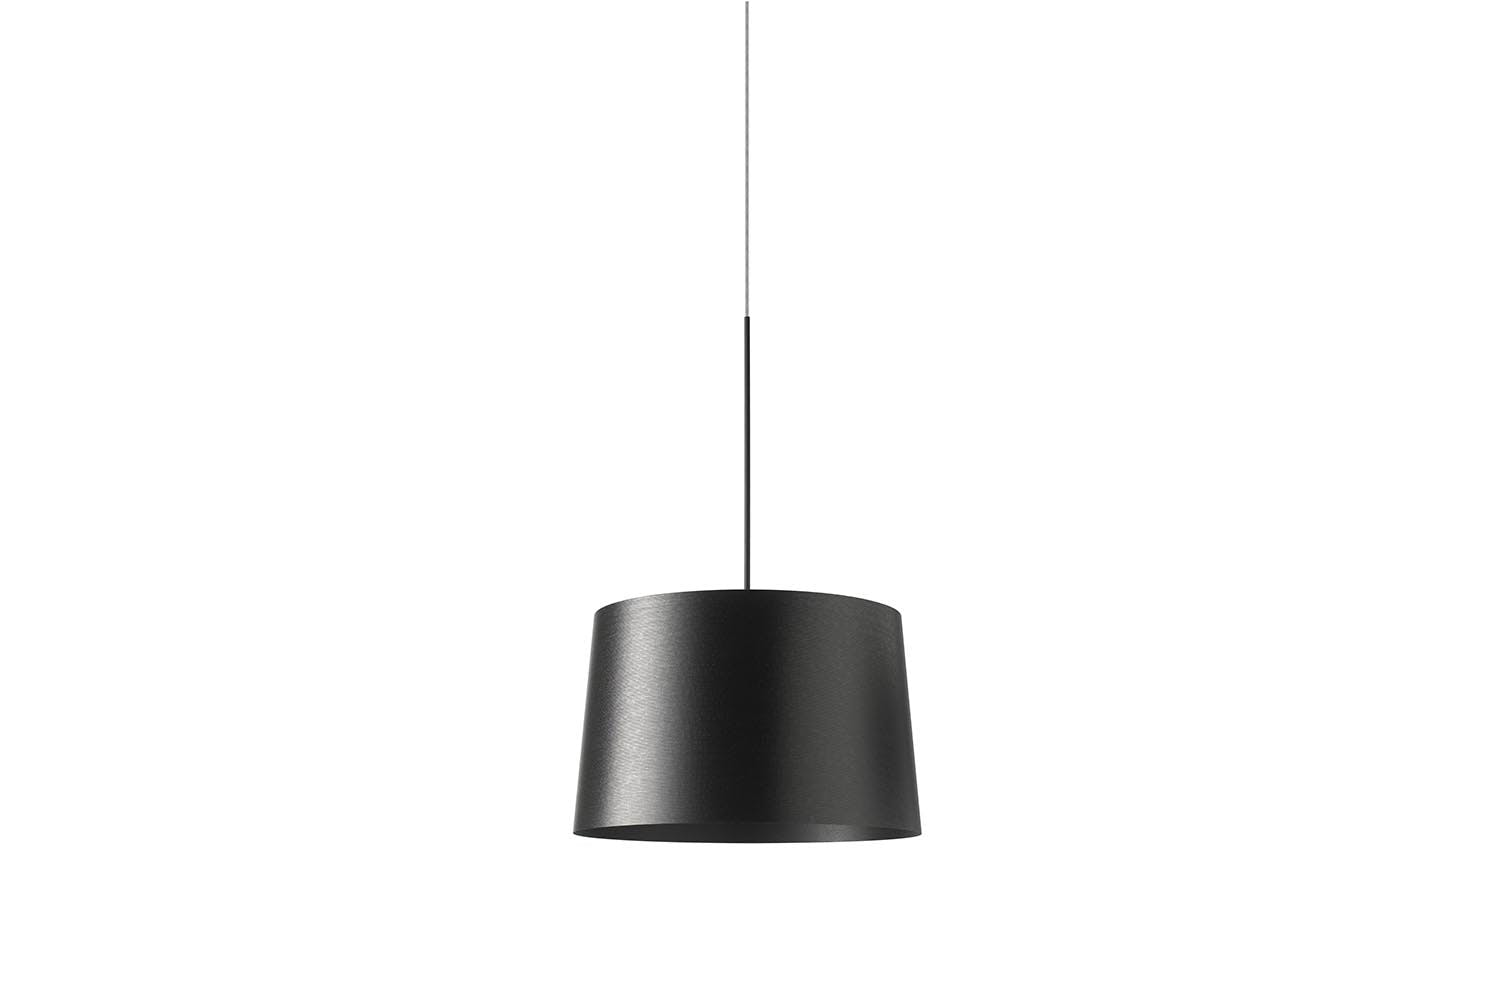 twiggy grande suspension lamp by marc sadler for foscarini space furniture